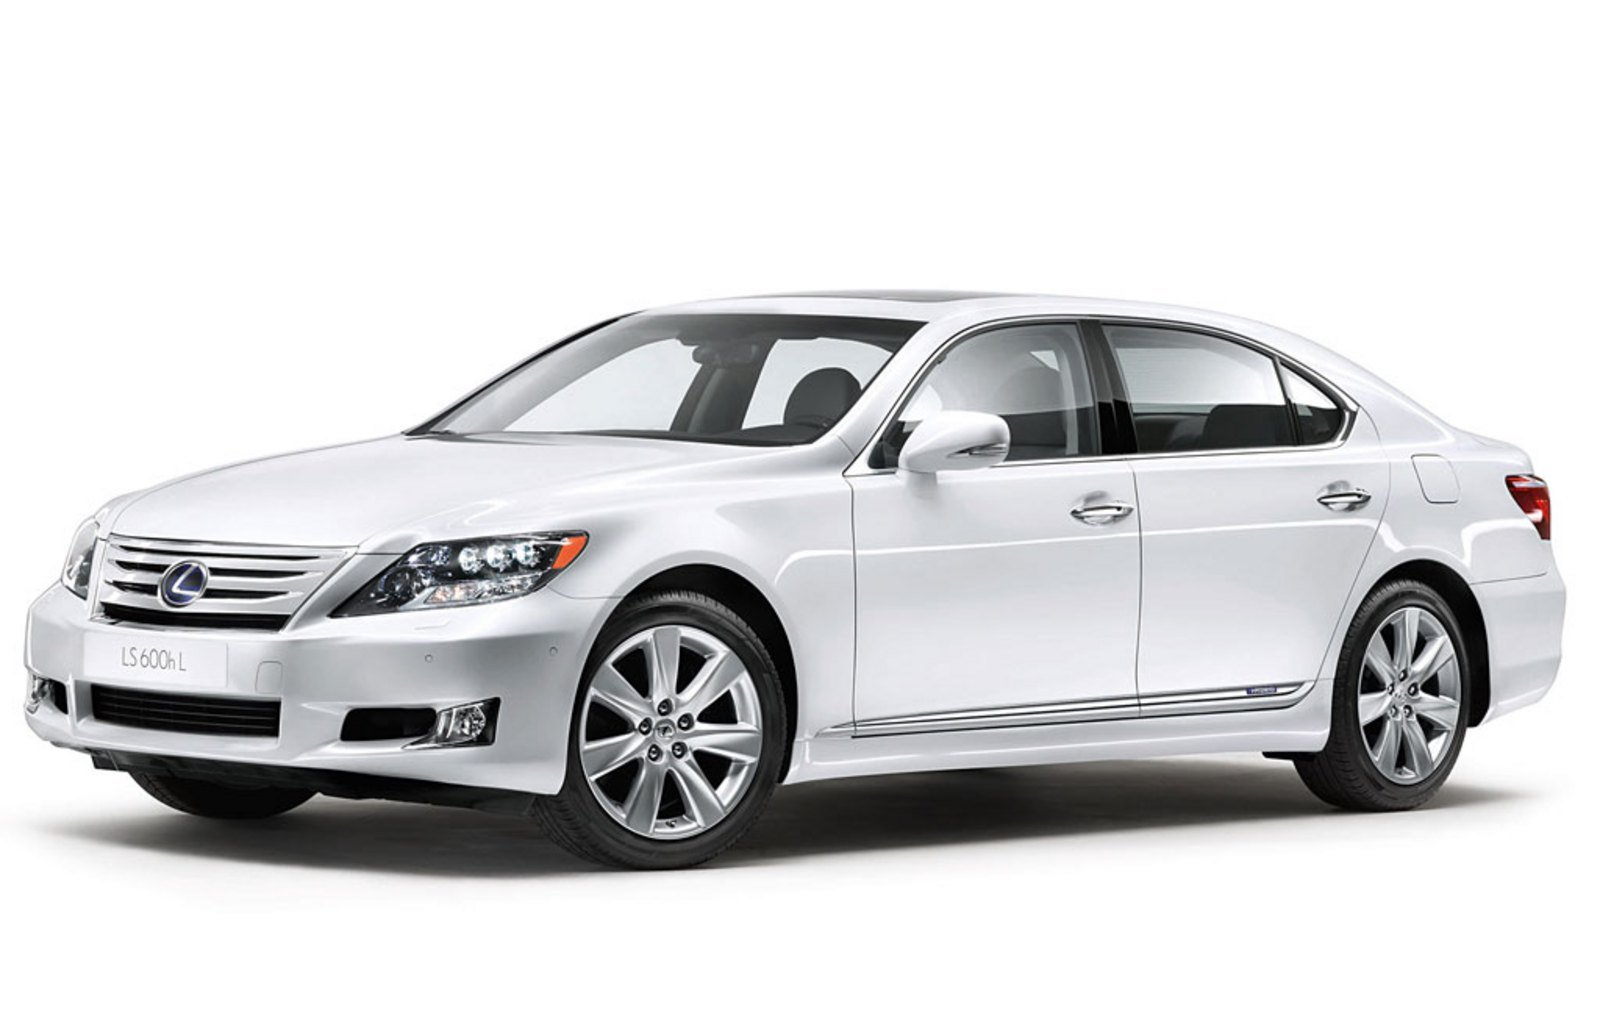 2010 lexus ls 600h review top speed. Black Bedroom Furniture Sets. Home Design Ideas